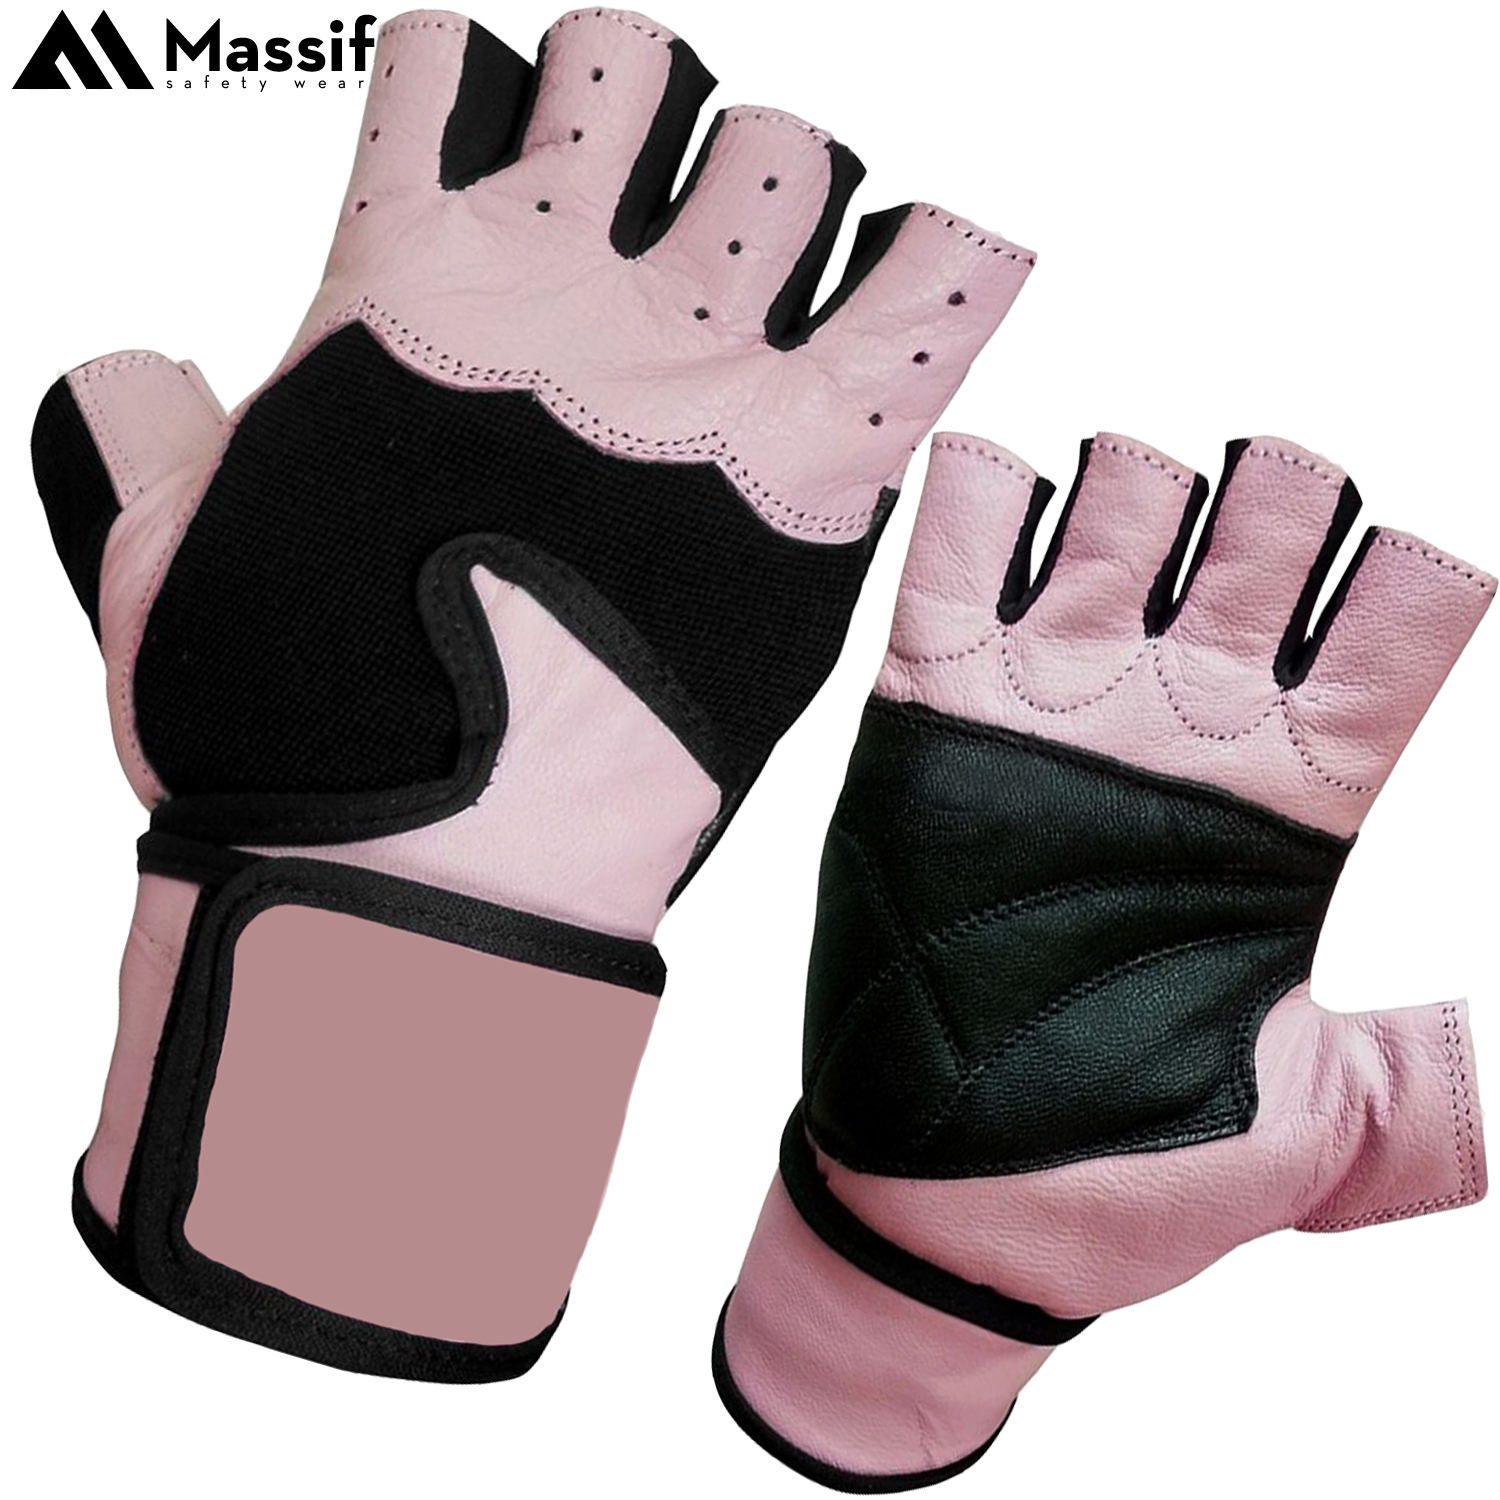 Pink Ladies Leather Workout Exercise Fitness Gymnastic Palm Protection Padded Gloves for WOD's, Dumbbell Specially for Women